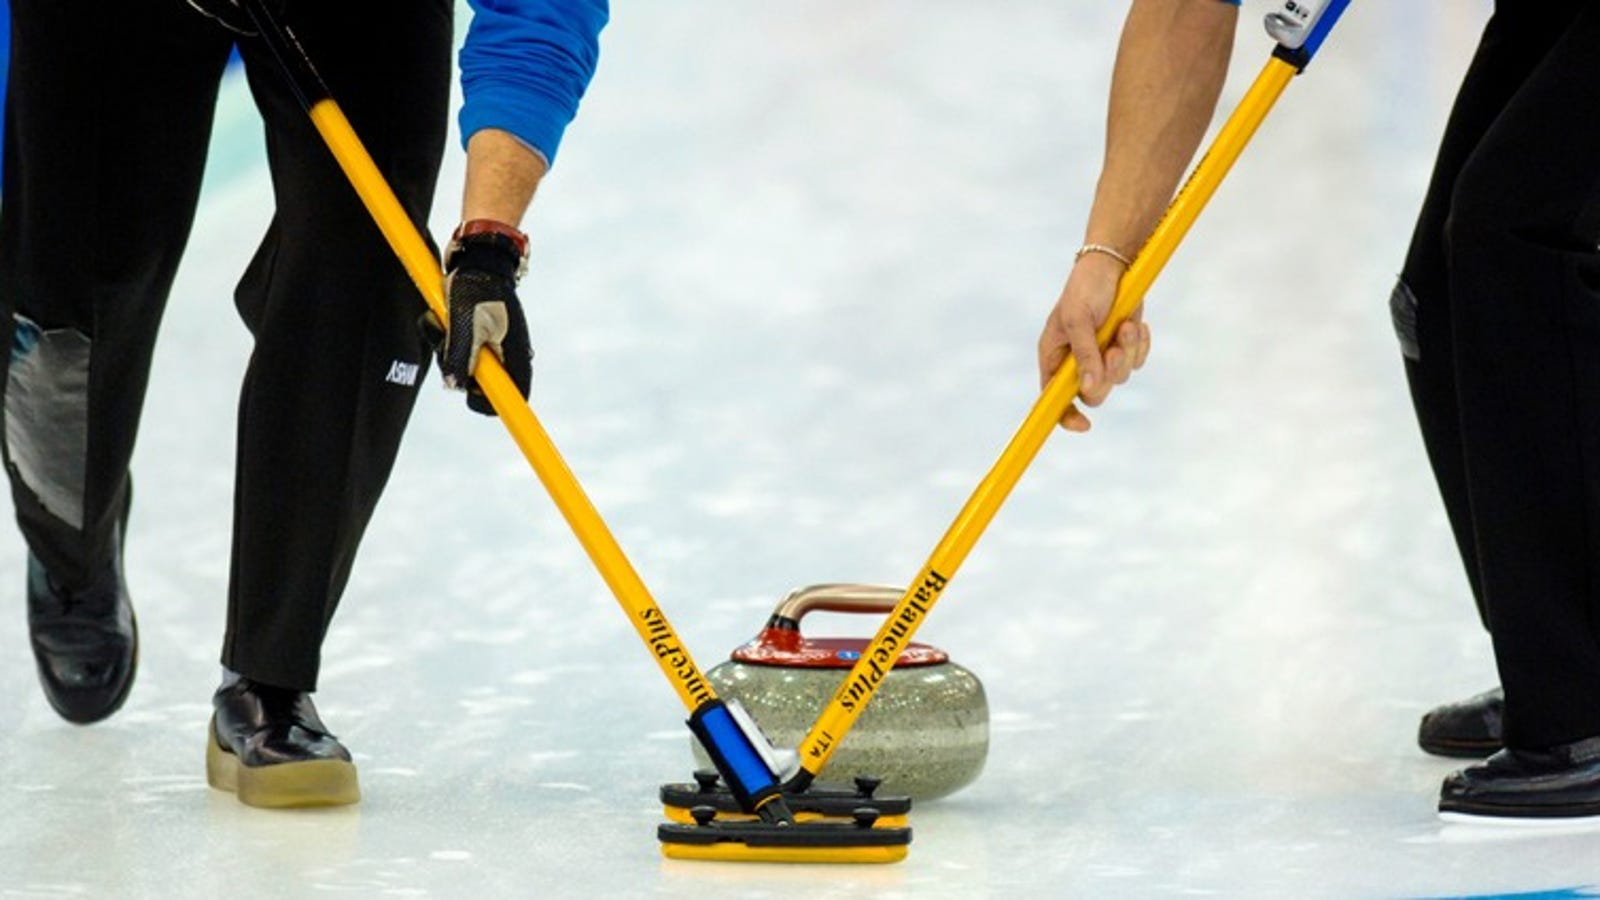 Here S The Physics Behind The Broomgate Controversy